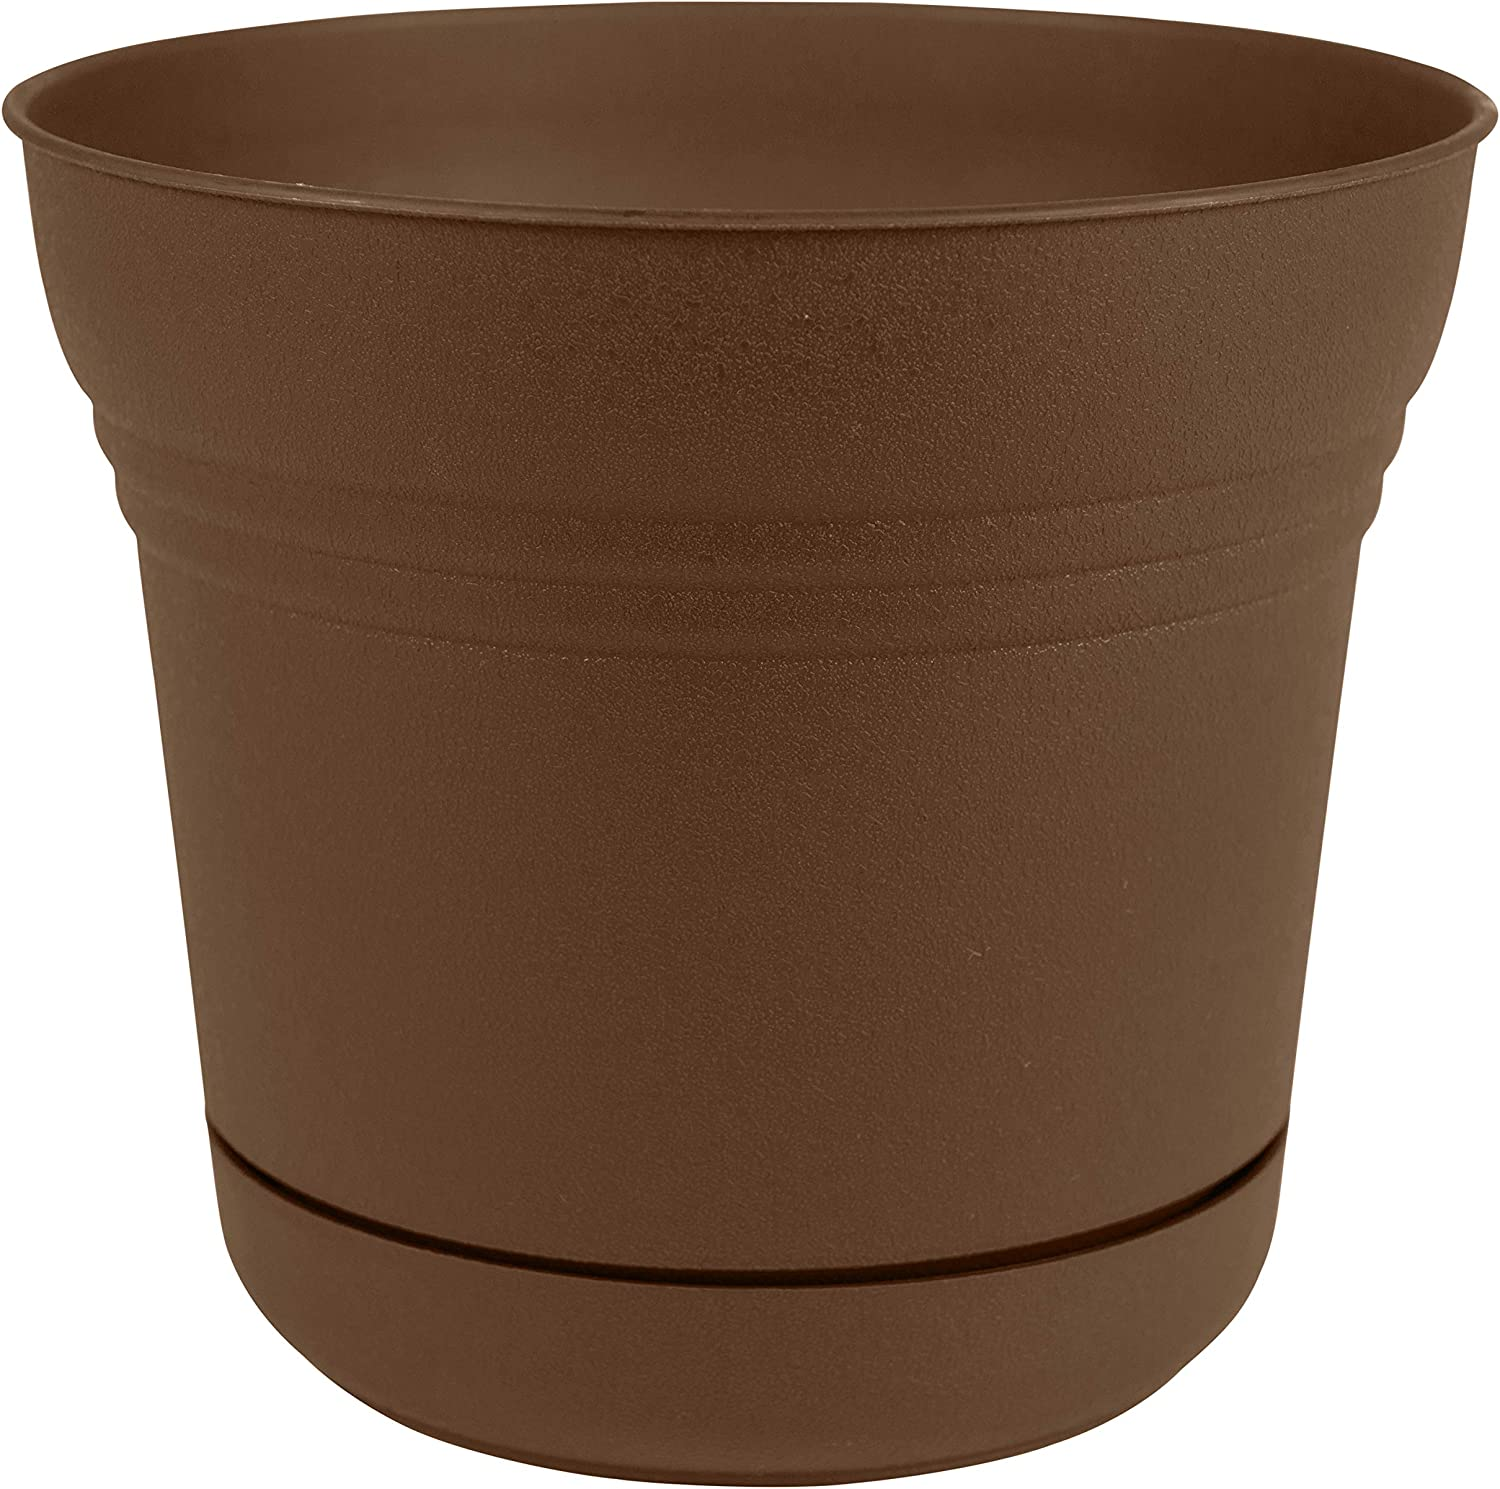 Bloem Saturn Planter with Saucer, 10 , Chocolate SP1045